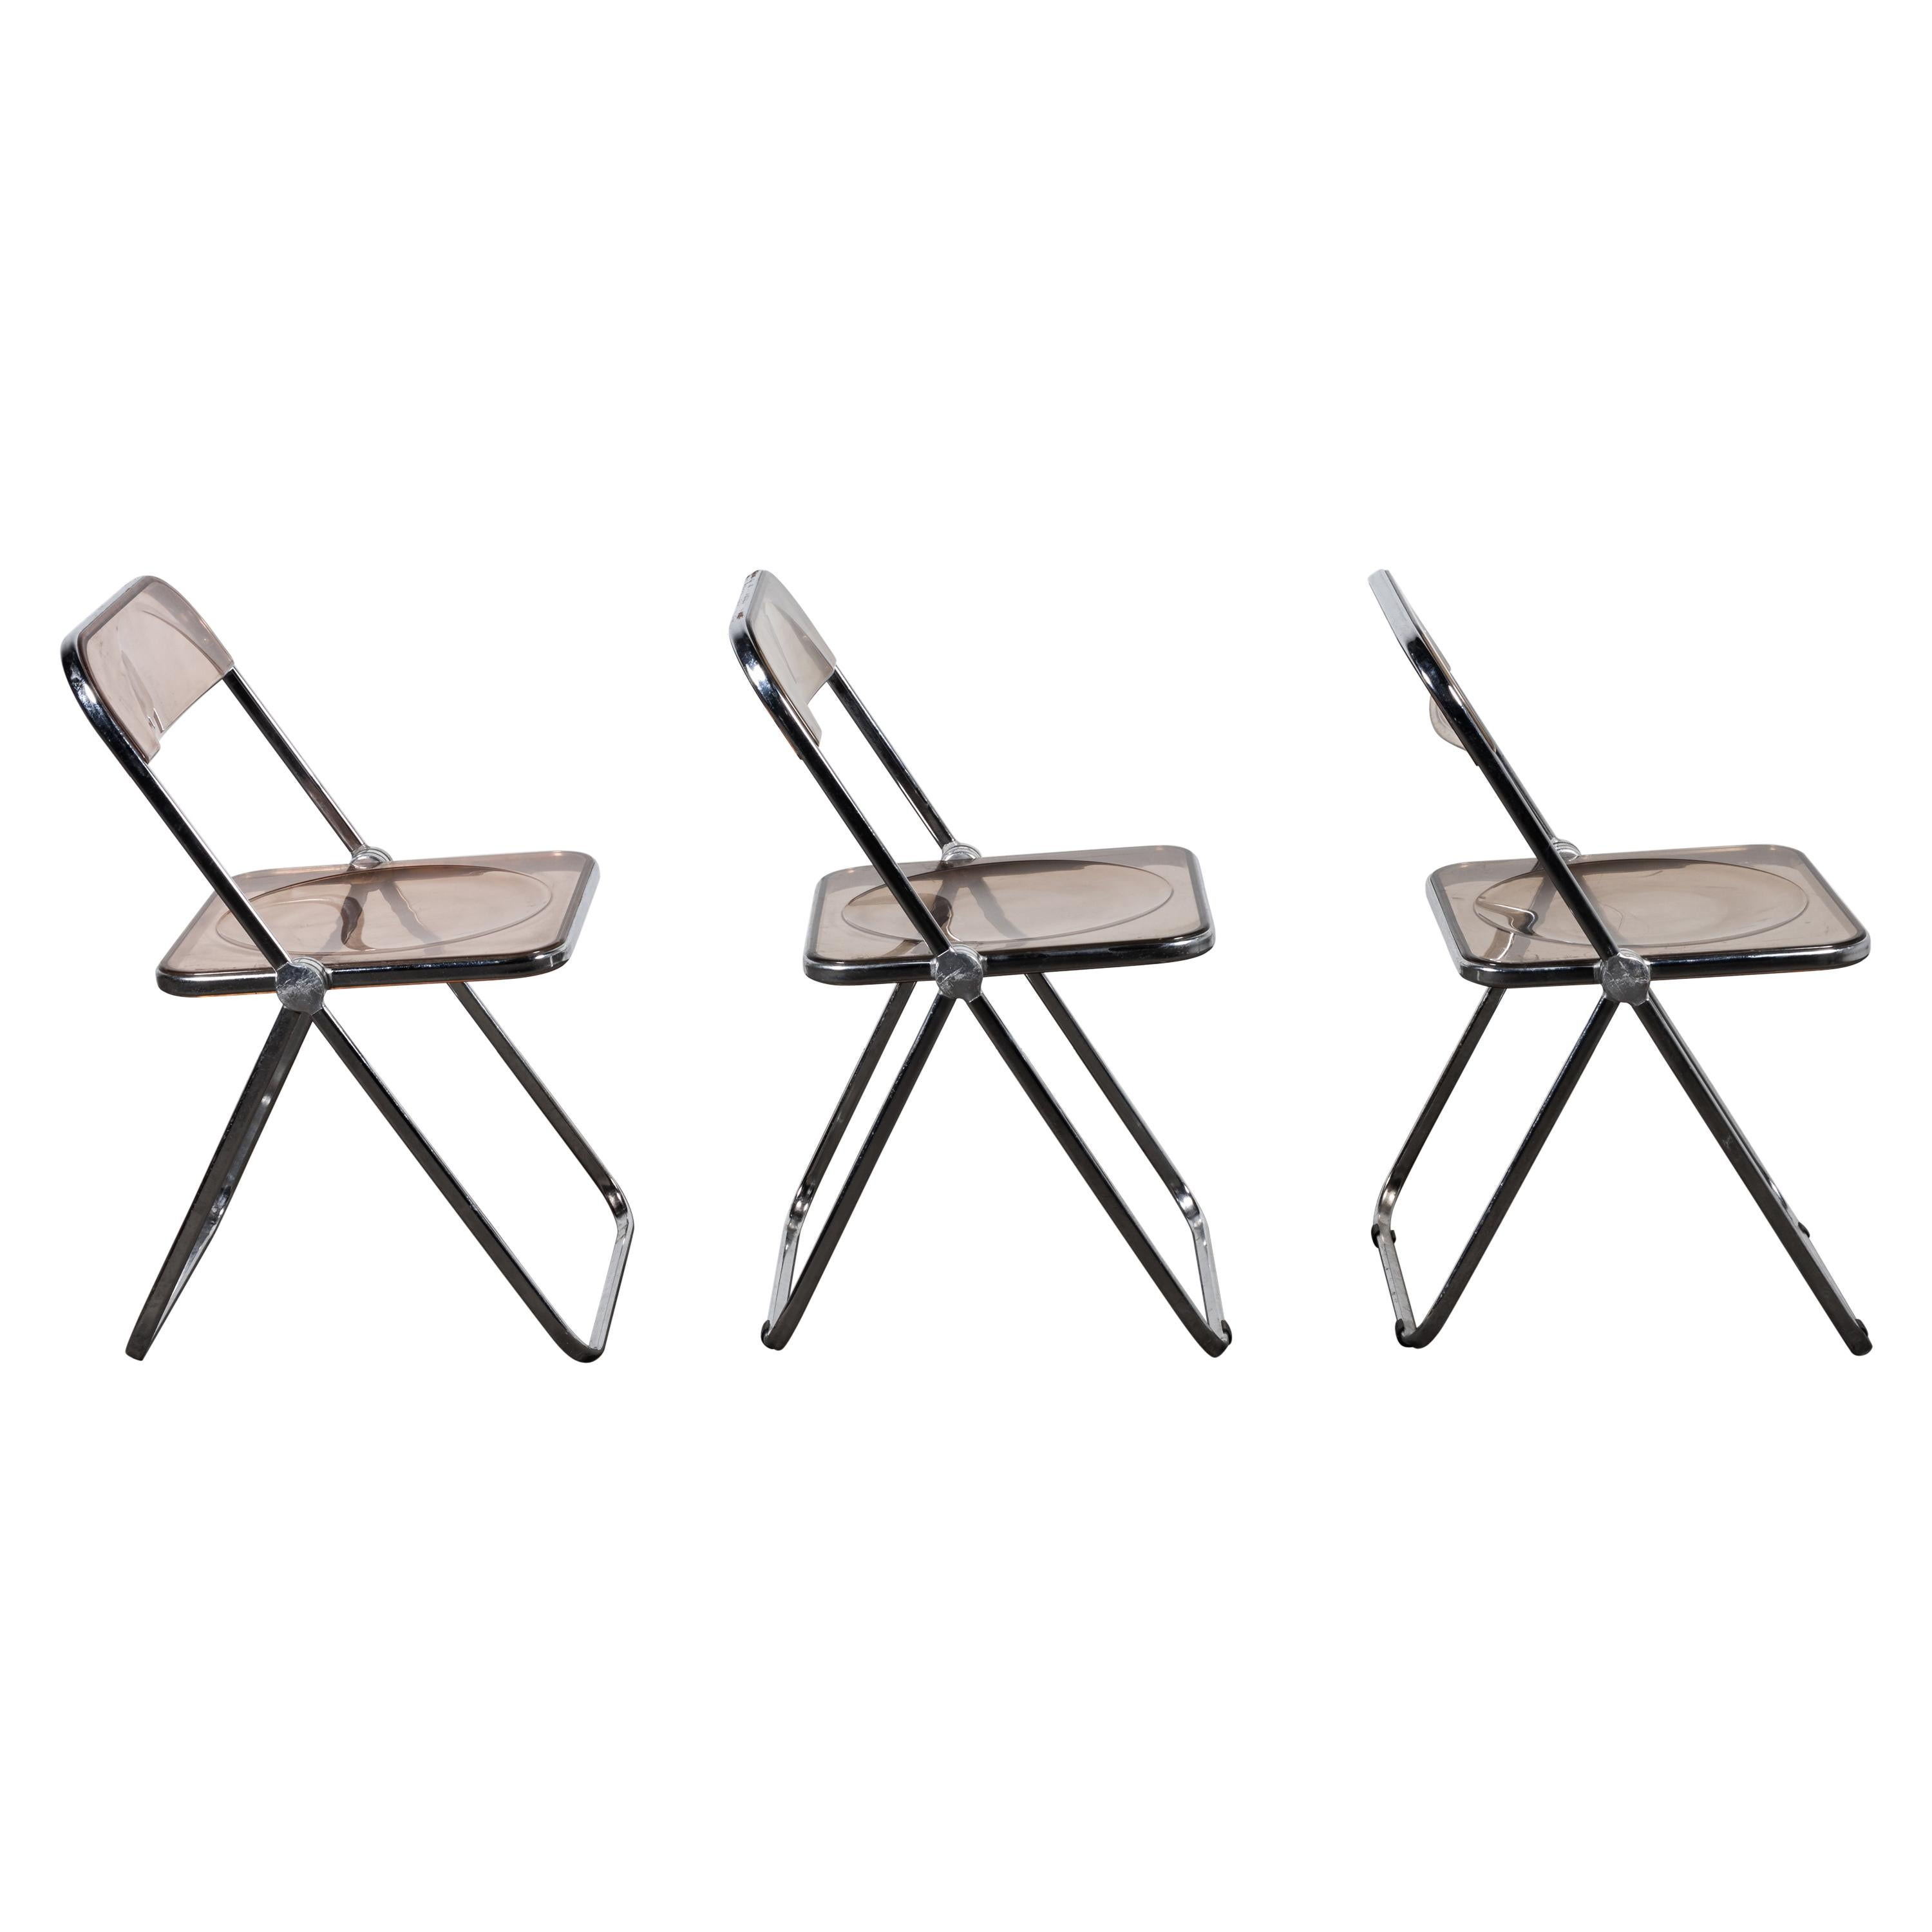 """3 Folding Lucite """"Plia"""" Chair by Piretti for Castelli, Italy"""